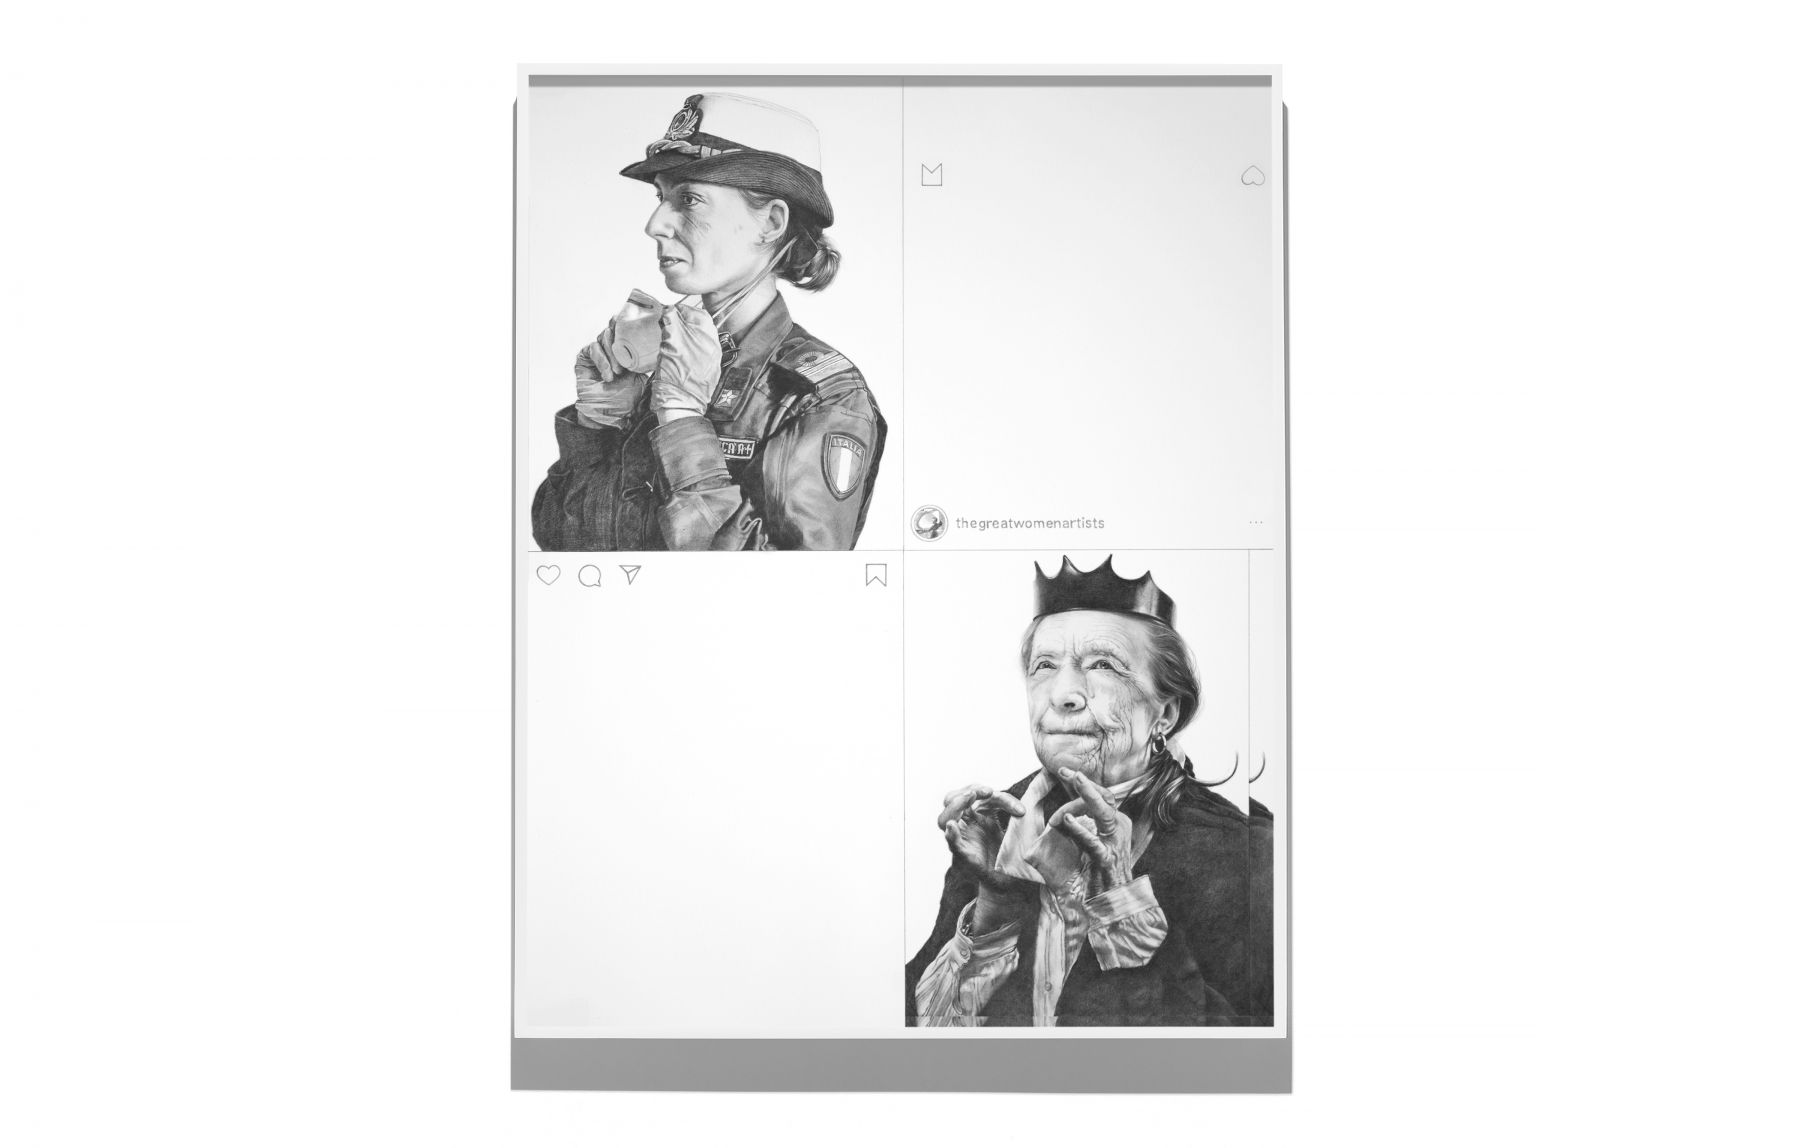 A drawing based on two Instagram posts, one that shows a medical worker in Italy removing a mask and one that shows the artist Louise Bourgeois